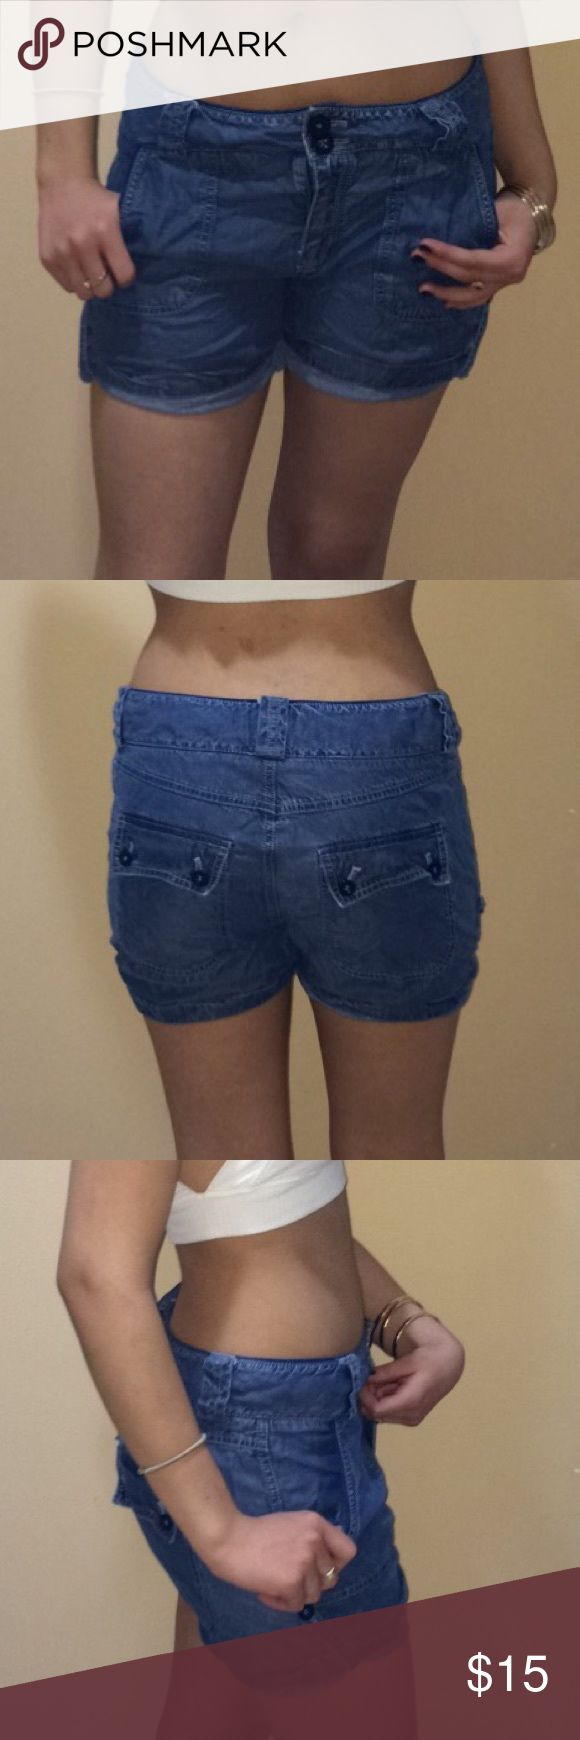 Denim baggy shorts Denim baggy shorts. Soft material and very comfortable Forever 21 Shorts